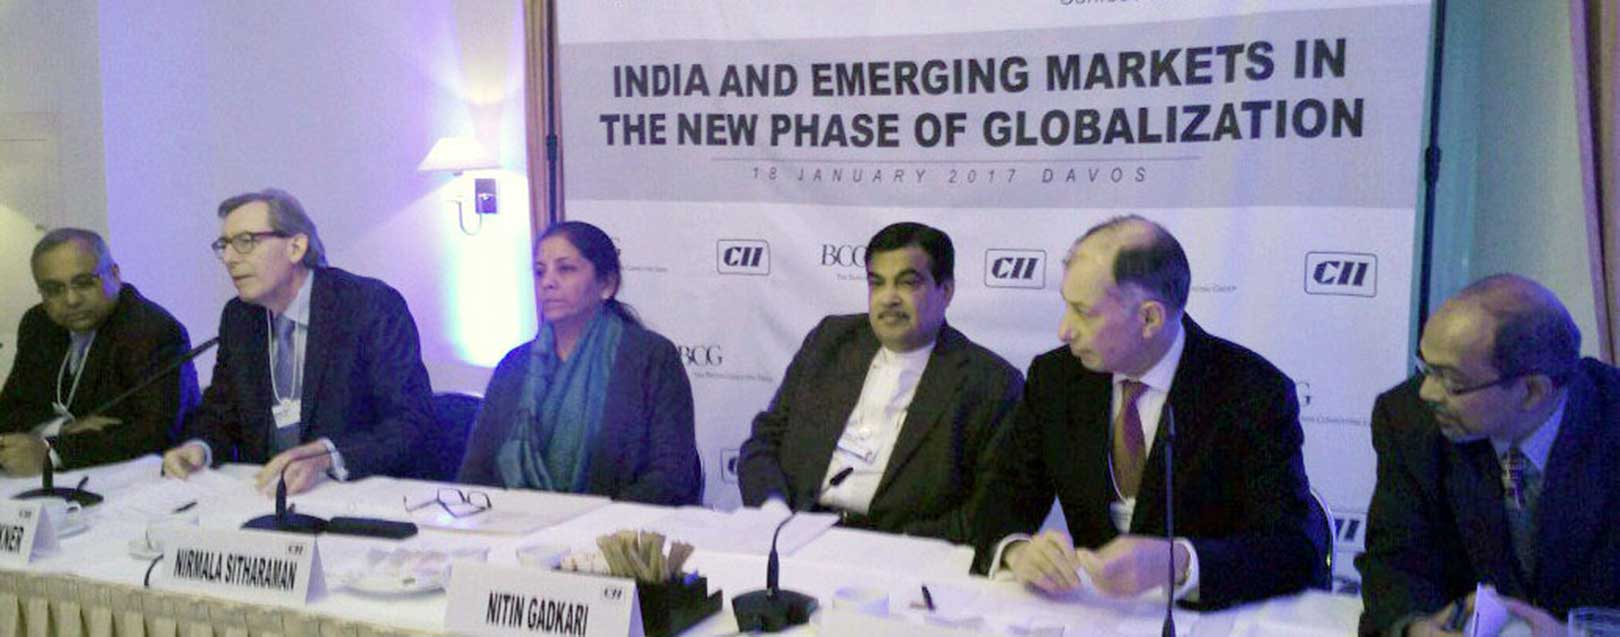 India 'very friendly' place to invest amid uncertainties